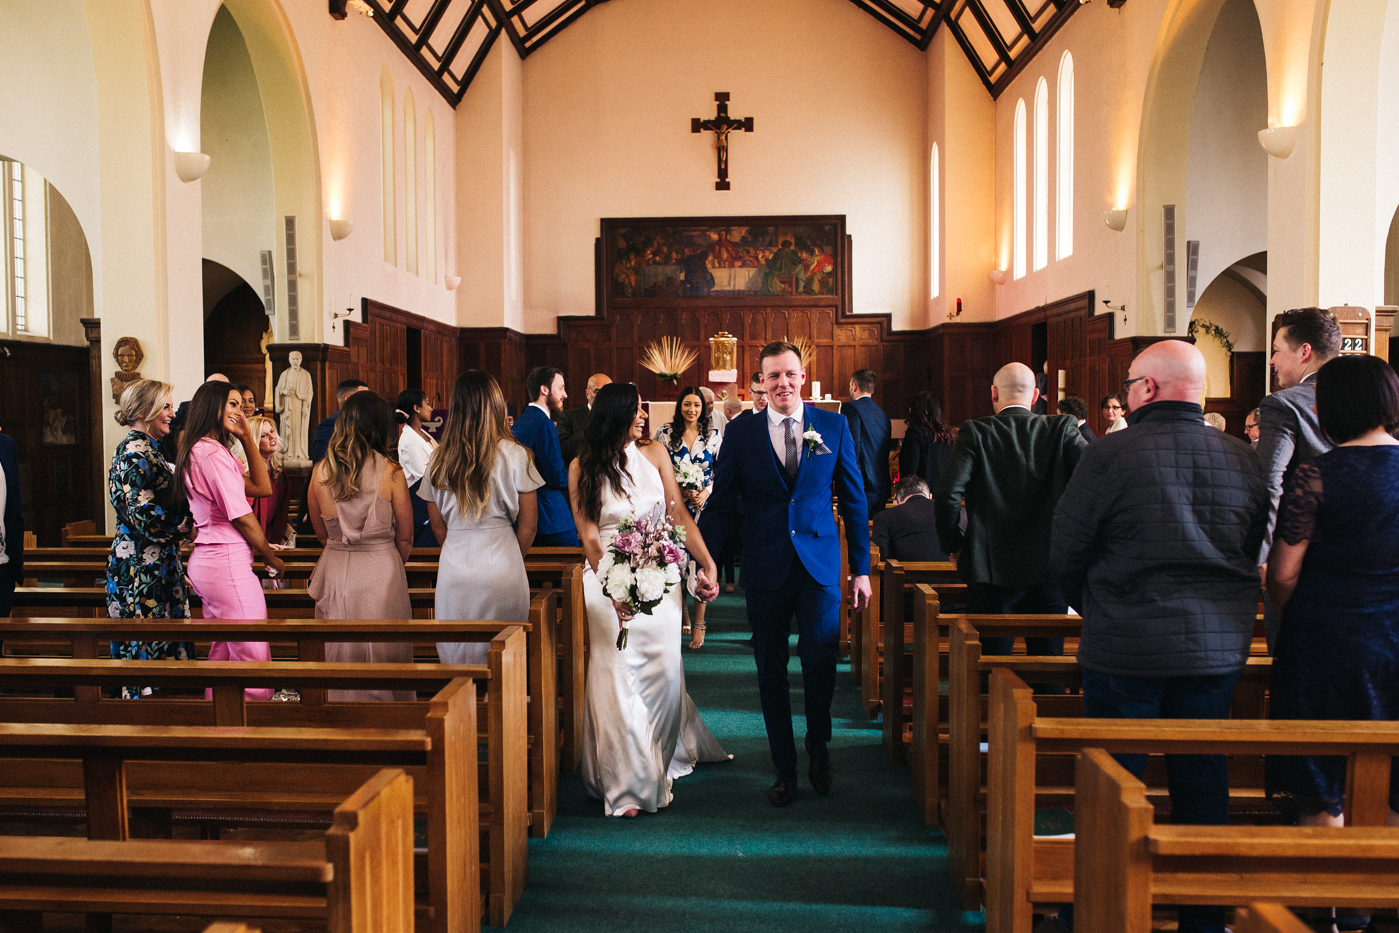 the bride and groom walk back up the aisle. relaxed teesside middlesbrough wedding photographer, wedding at home